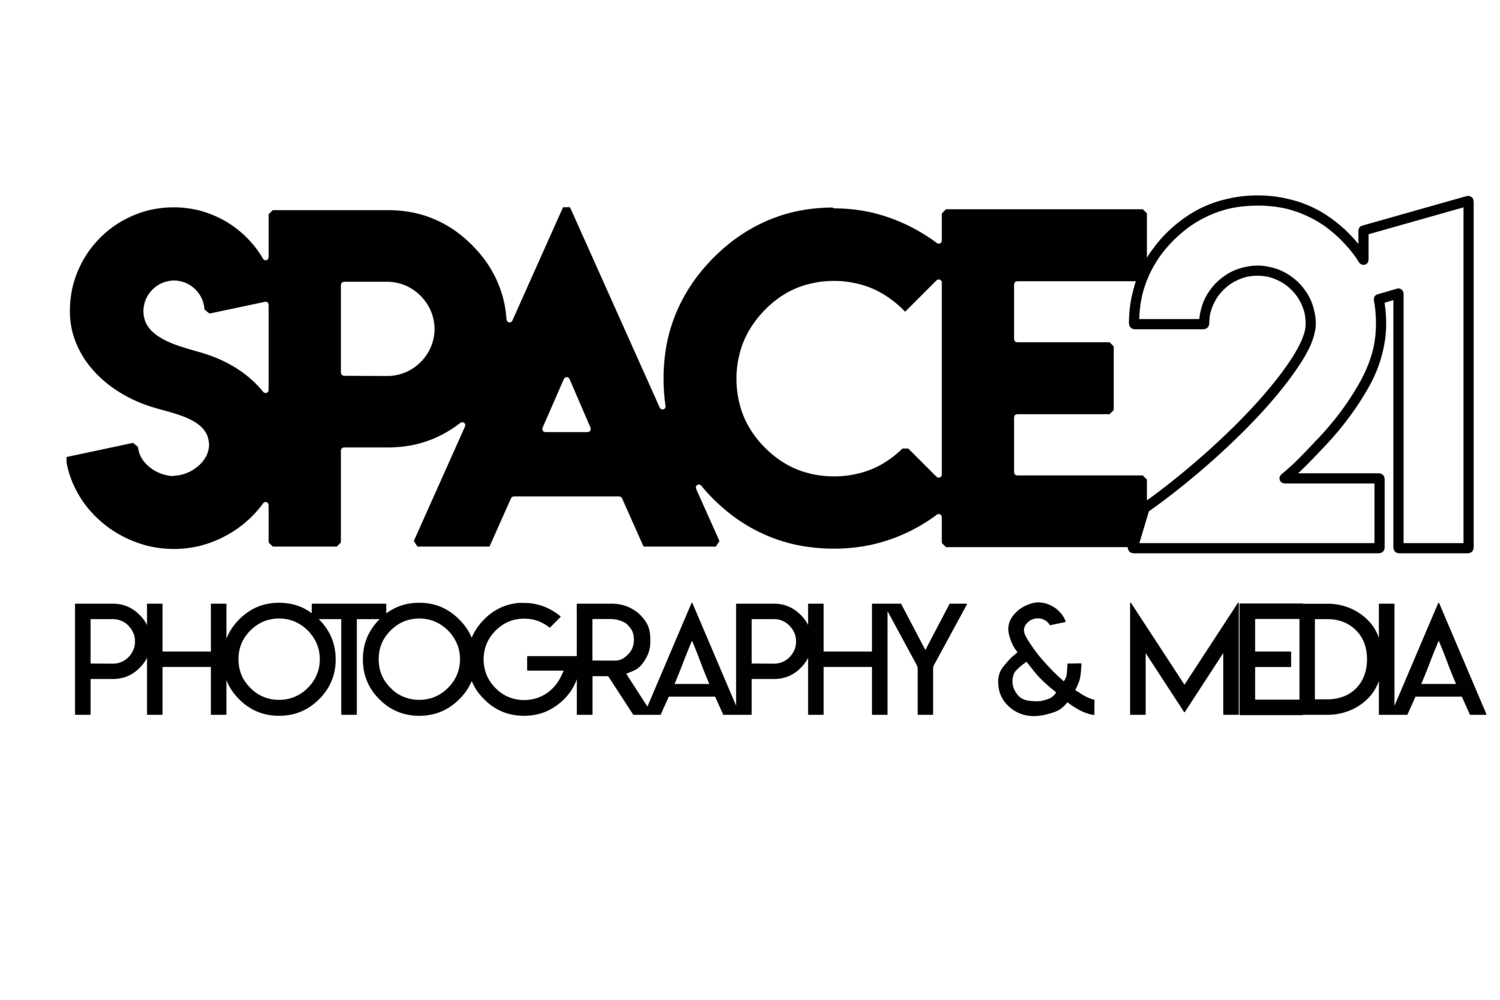 Space21